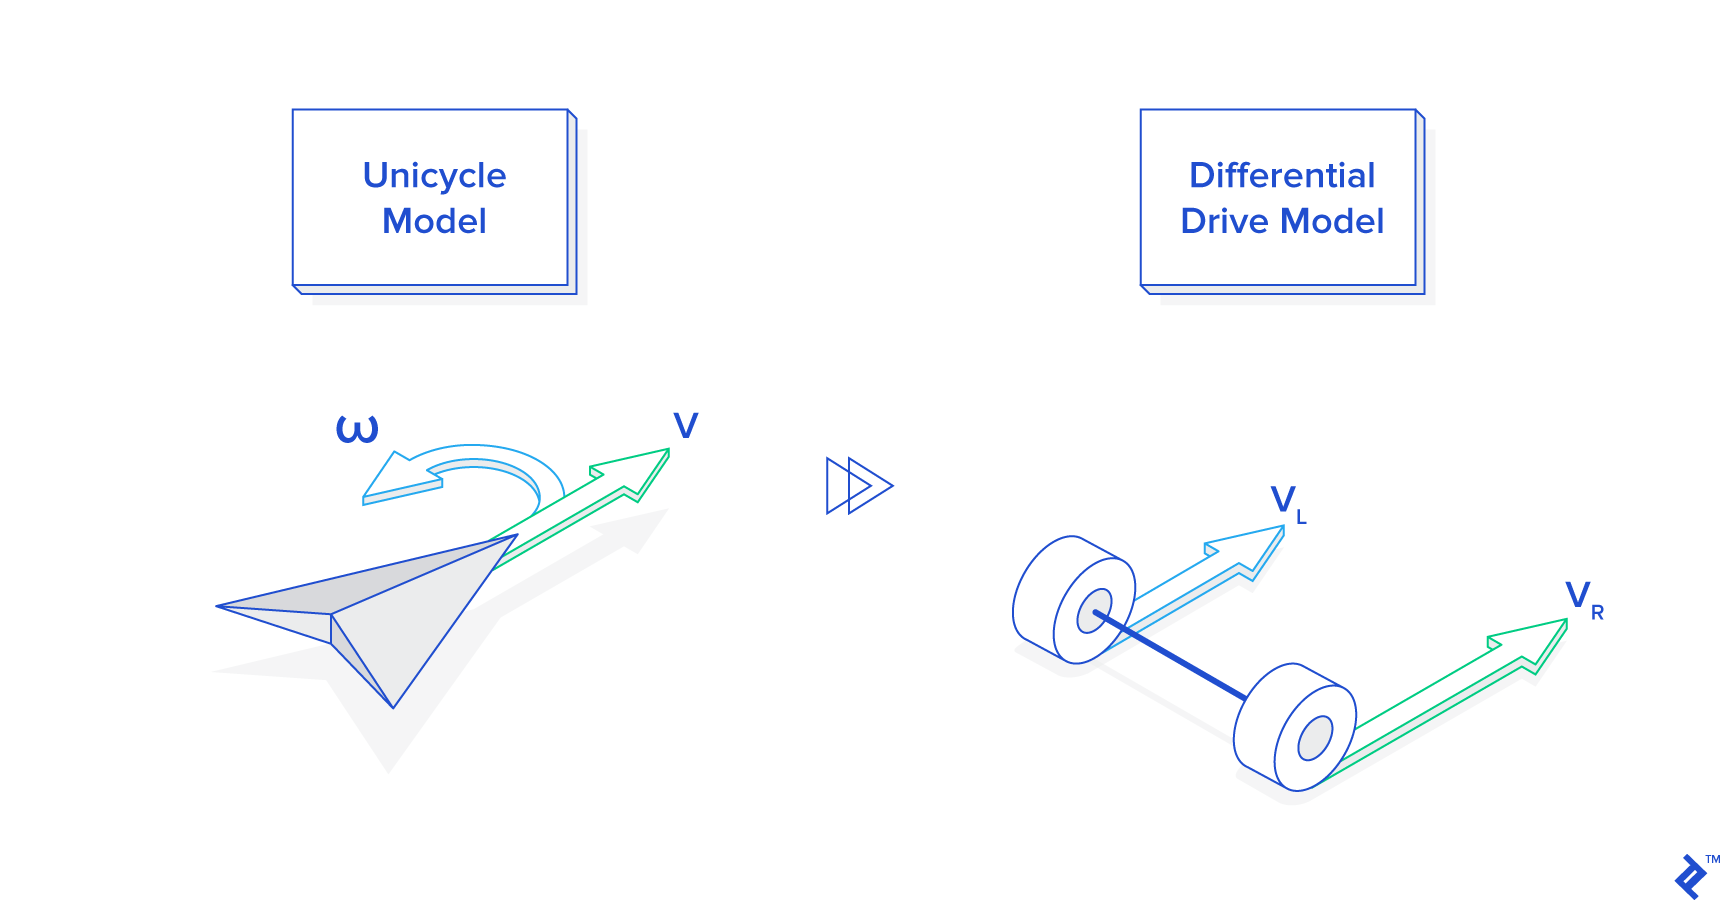 In robotics programming, it's important to understand the difference between unicycle and differential drive models.